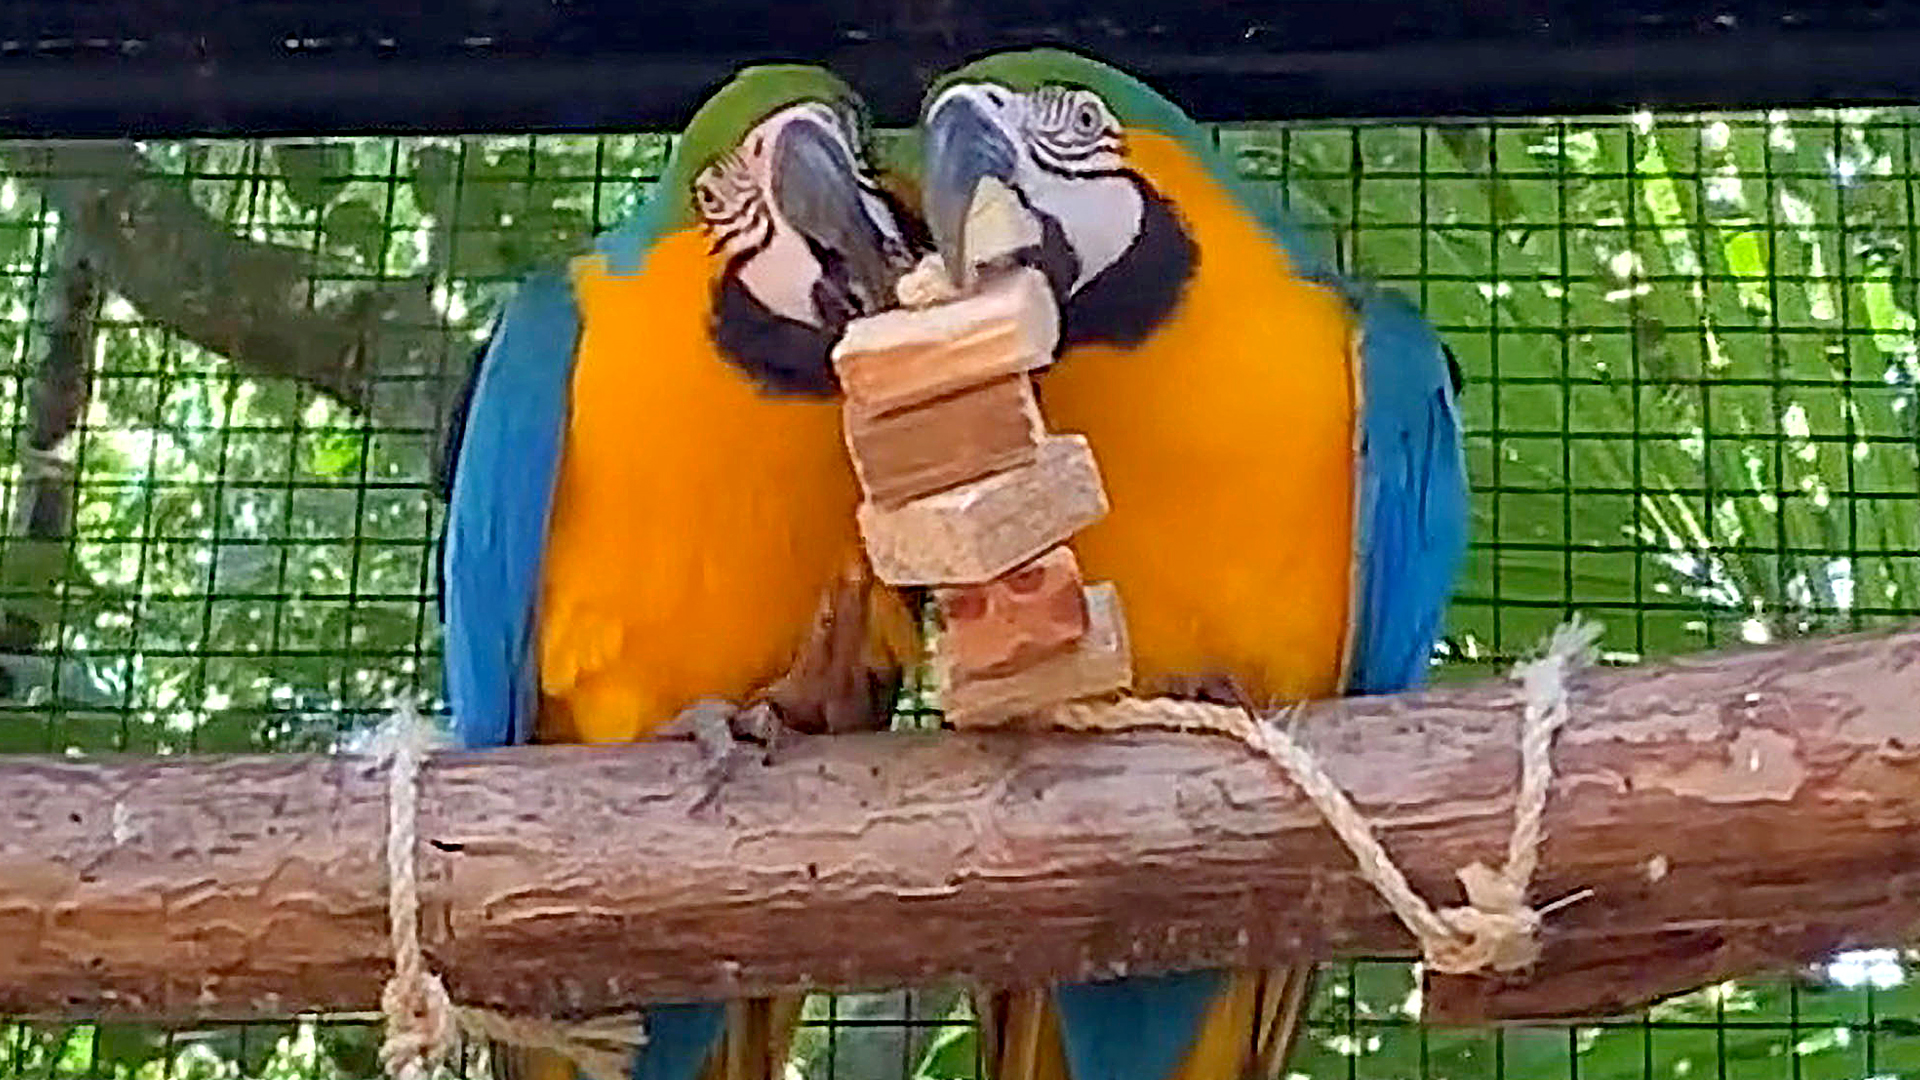 Rare Blue-Throated Macaws Spotted Playing at Bird Park